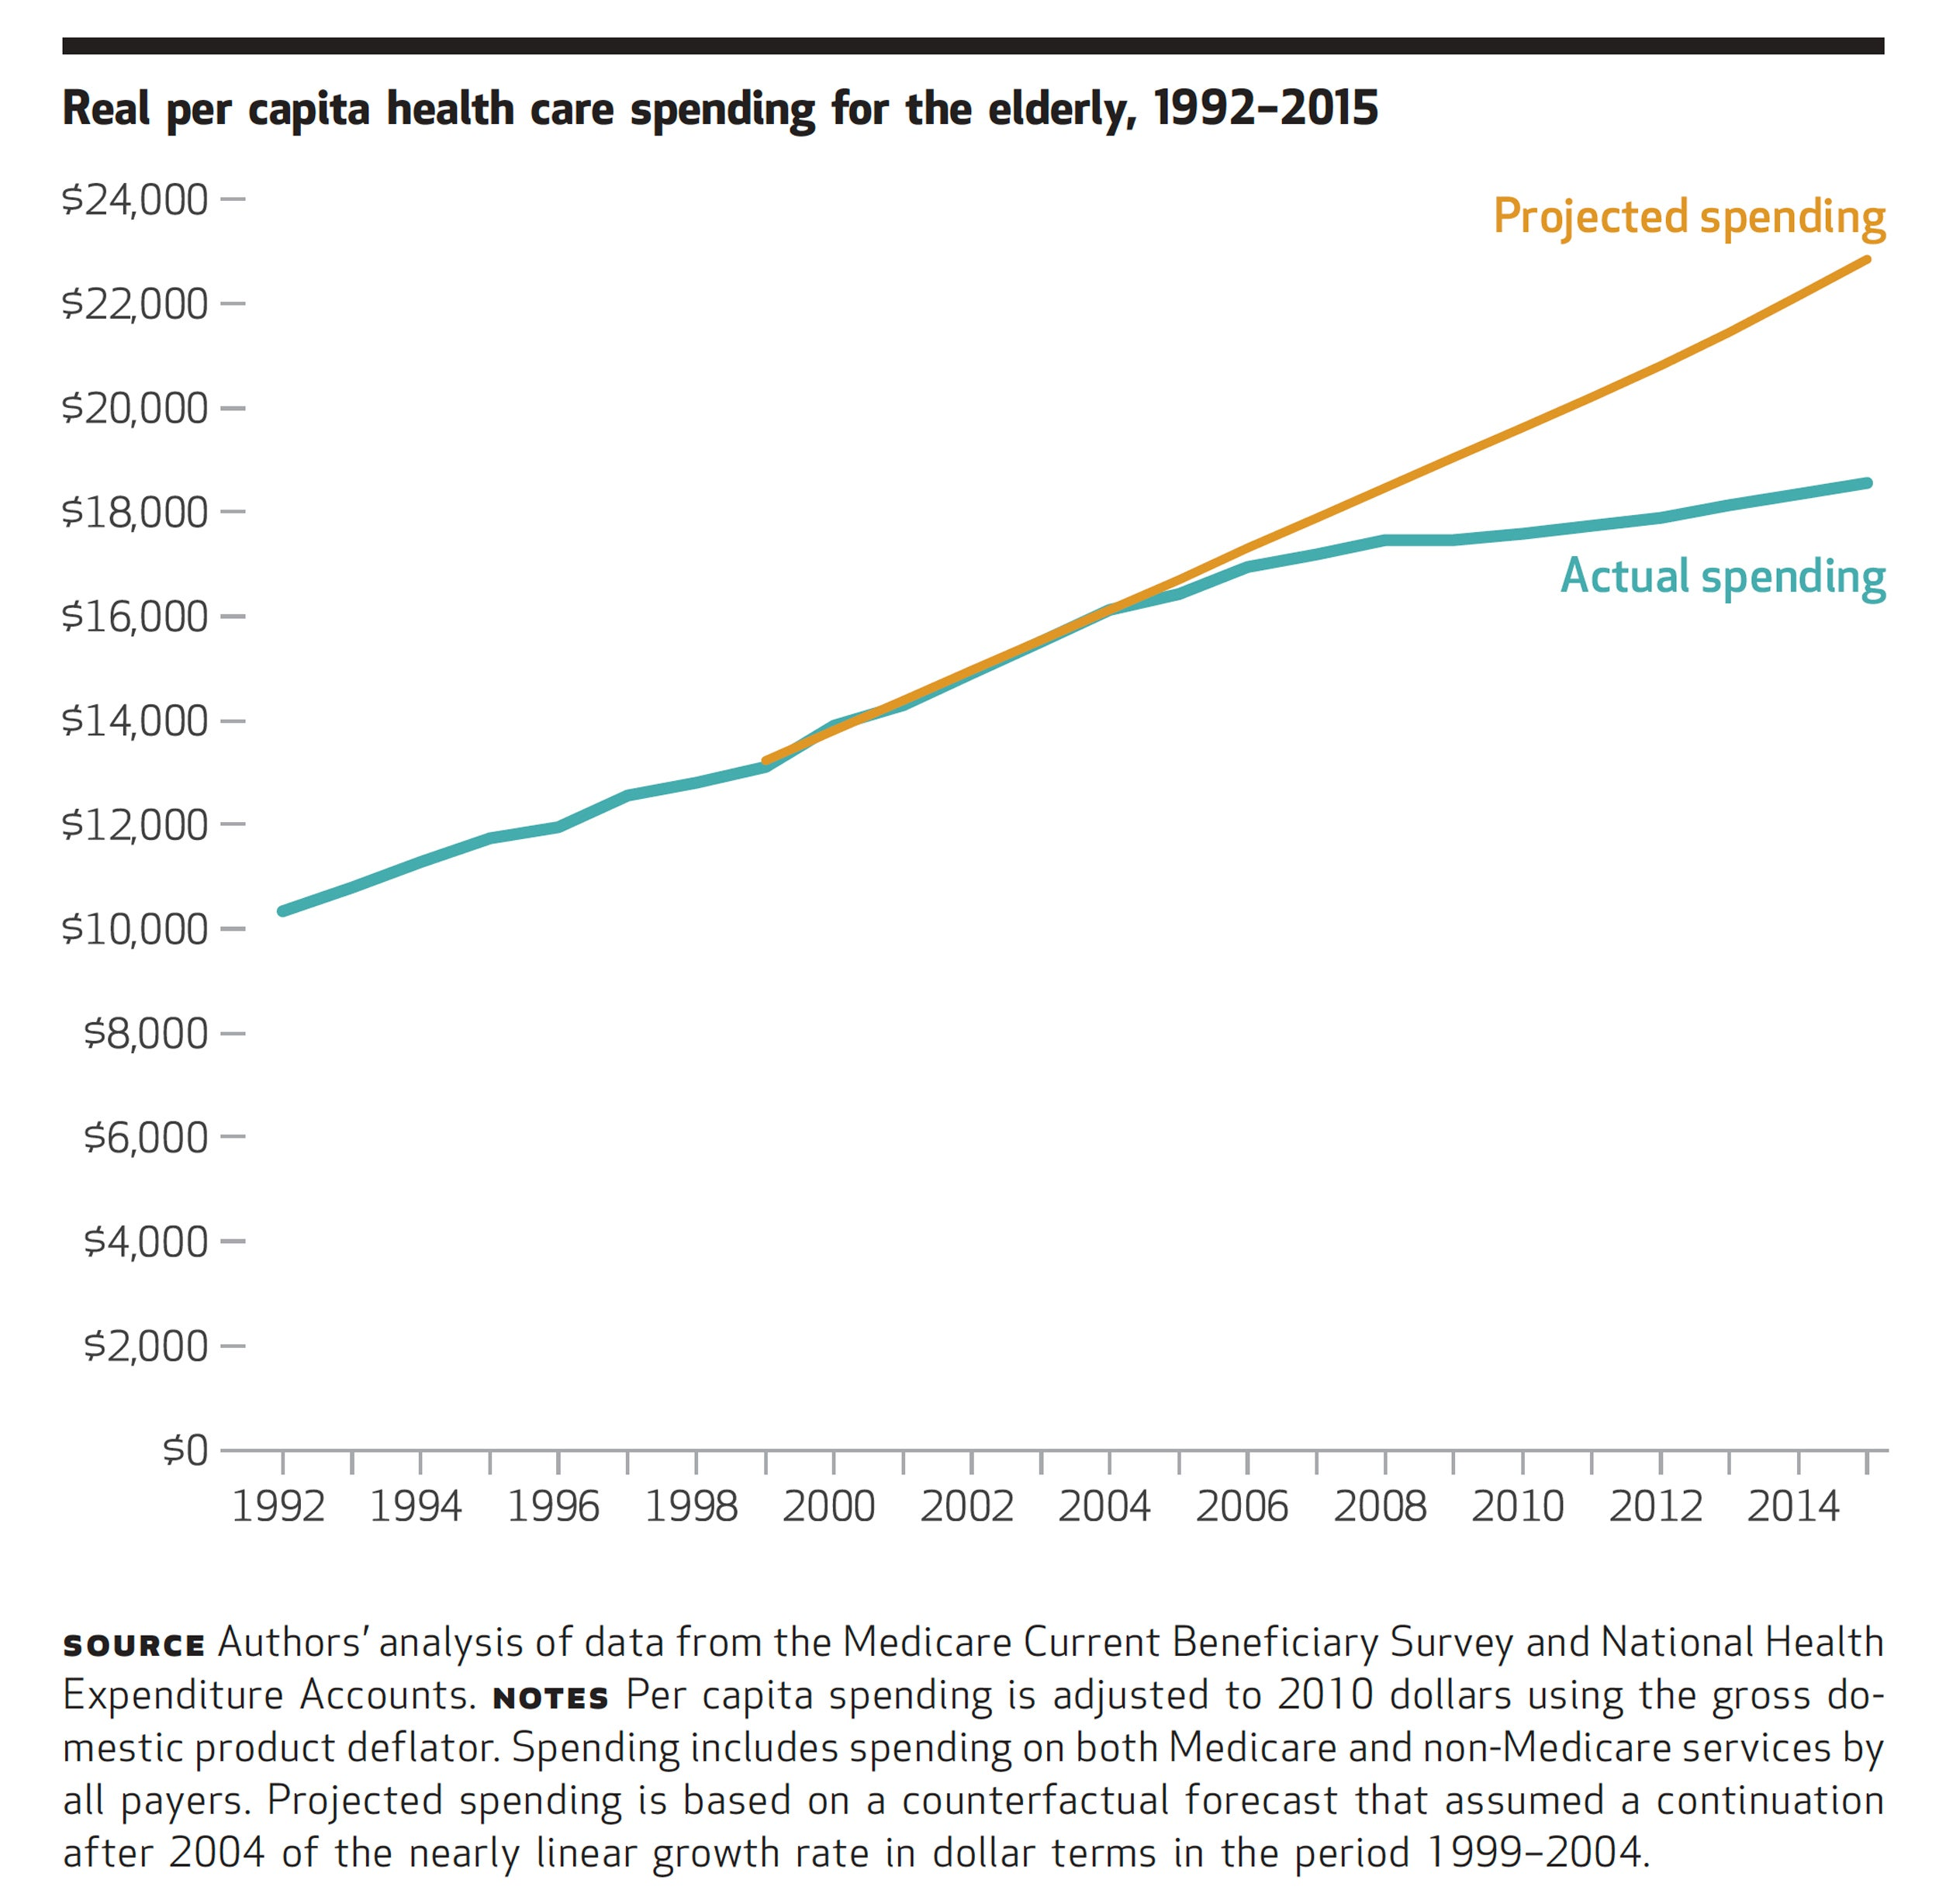 Real Per Capita Health Care Spending for the Elderly 1992-2015